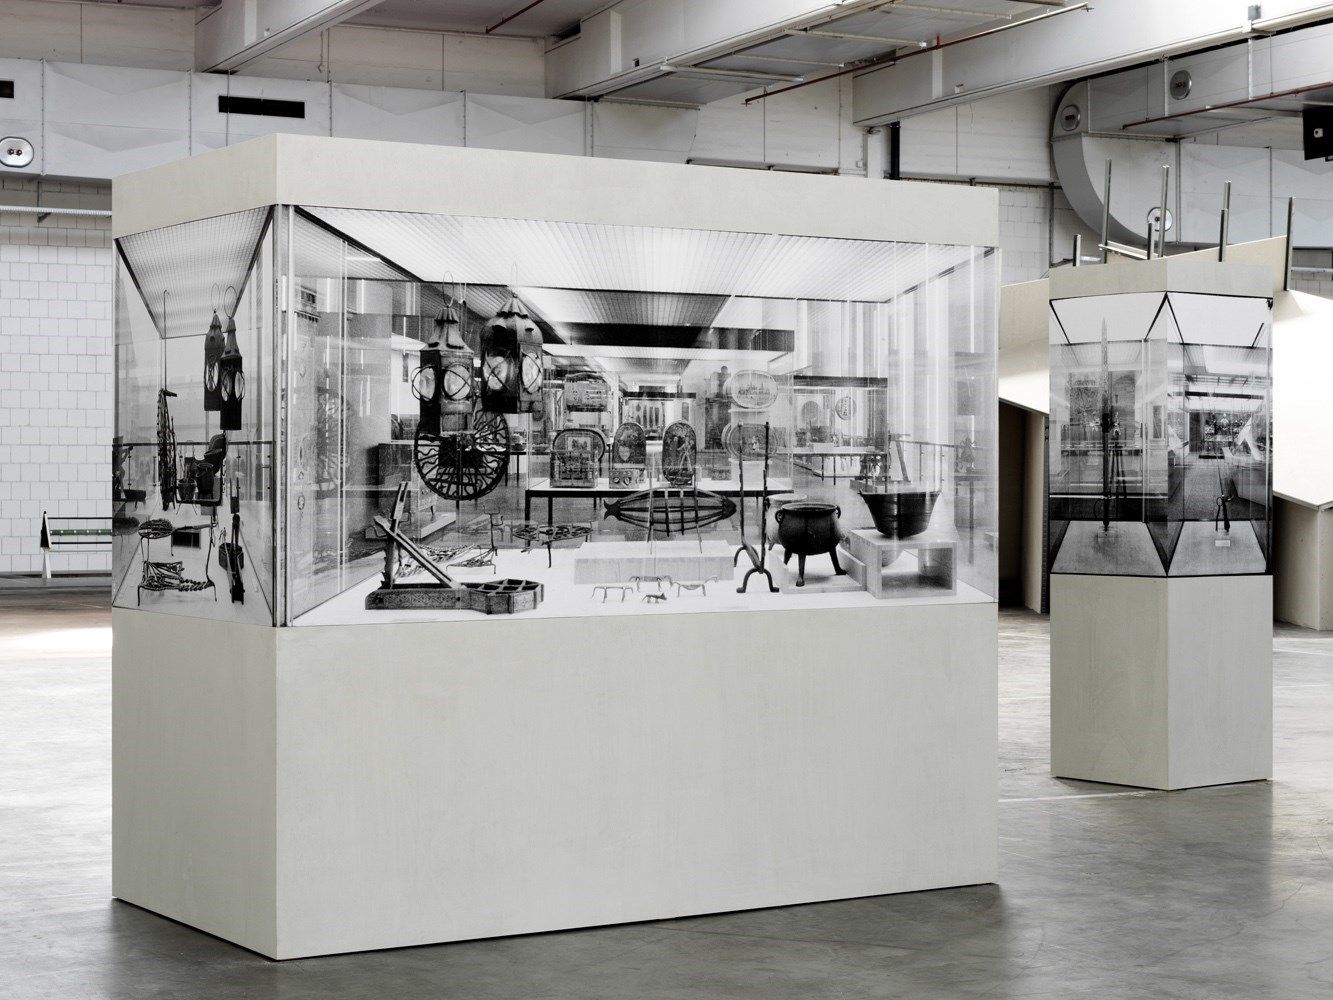 Vitrine (bäuerlicher Hausrath), 180 cm x 111 cm x 222 cm; <br />Vitrine (Schwert), 195 cm x 60 cm x 60 cm, black & white prints and wood, 2011<br />Installation view AEG Nürnberg